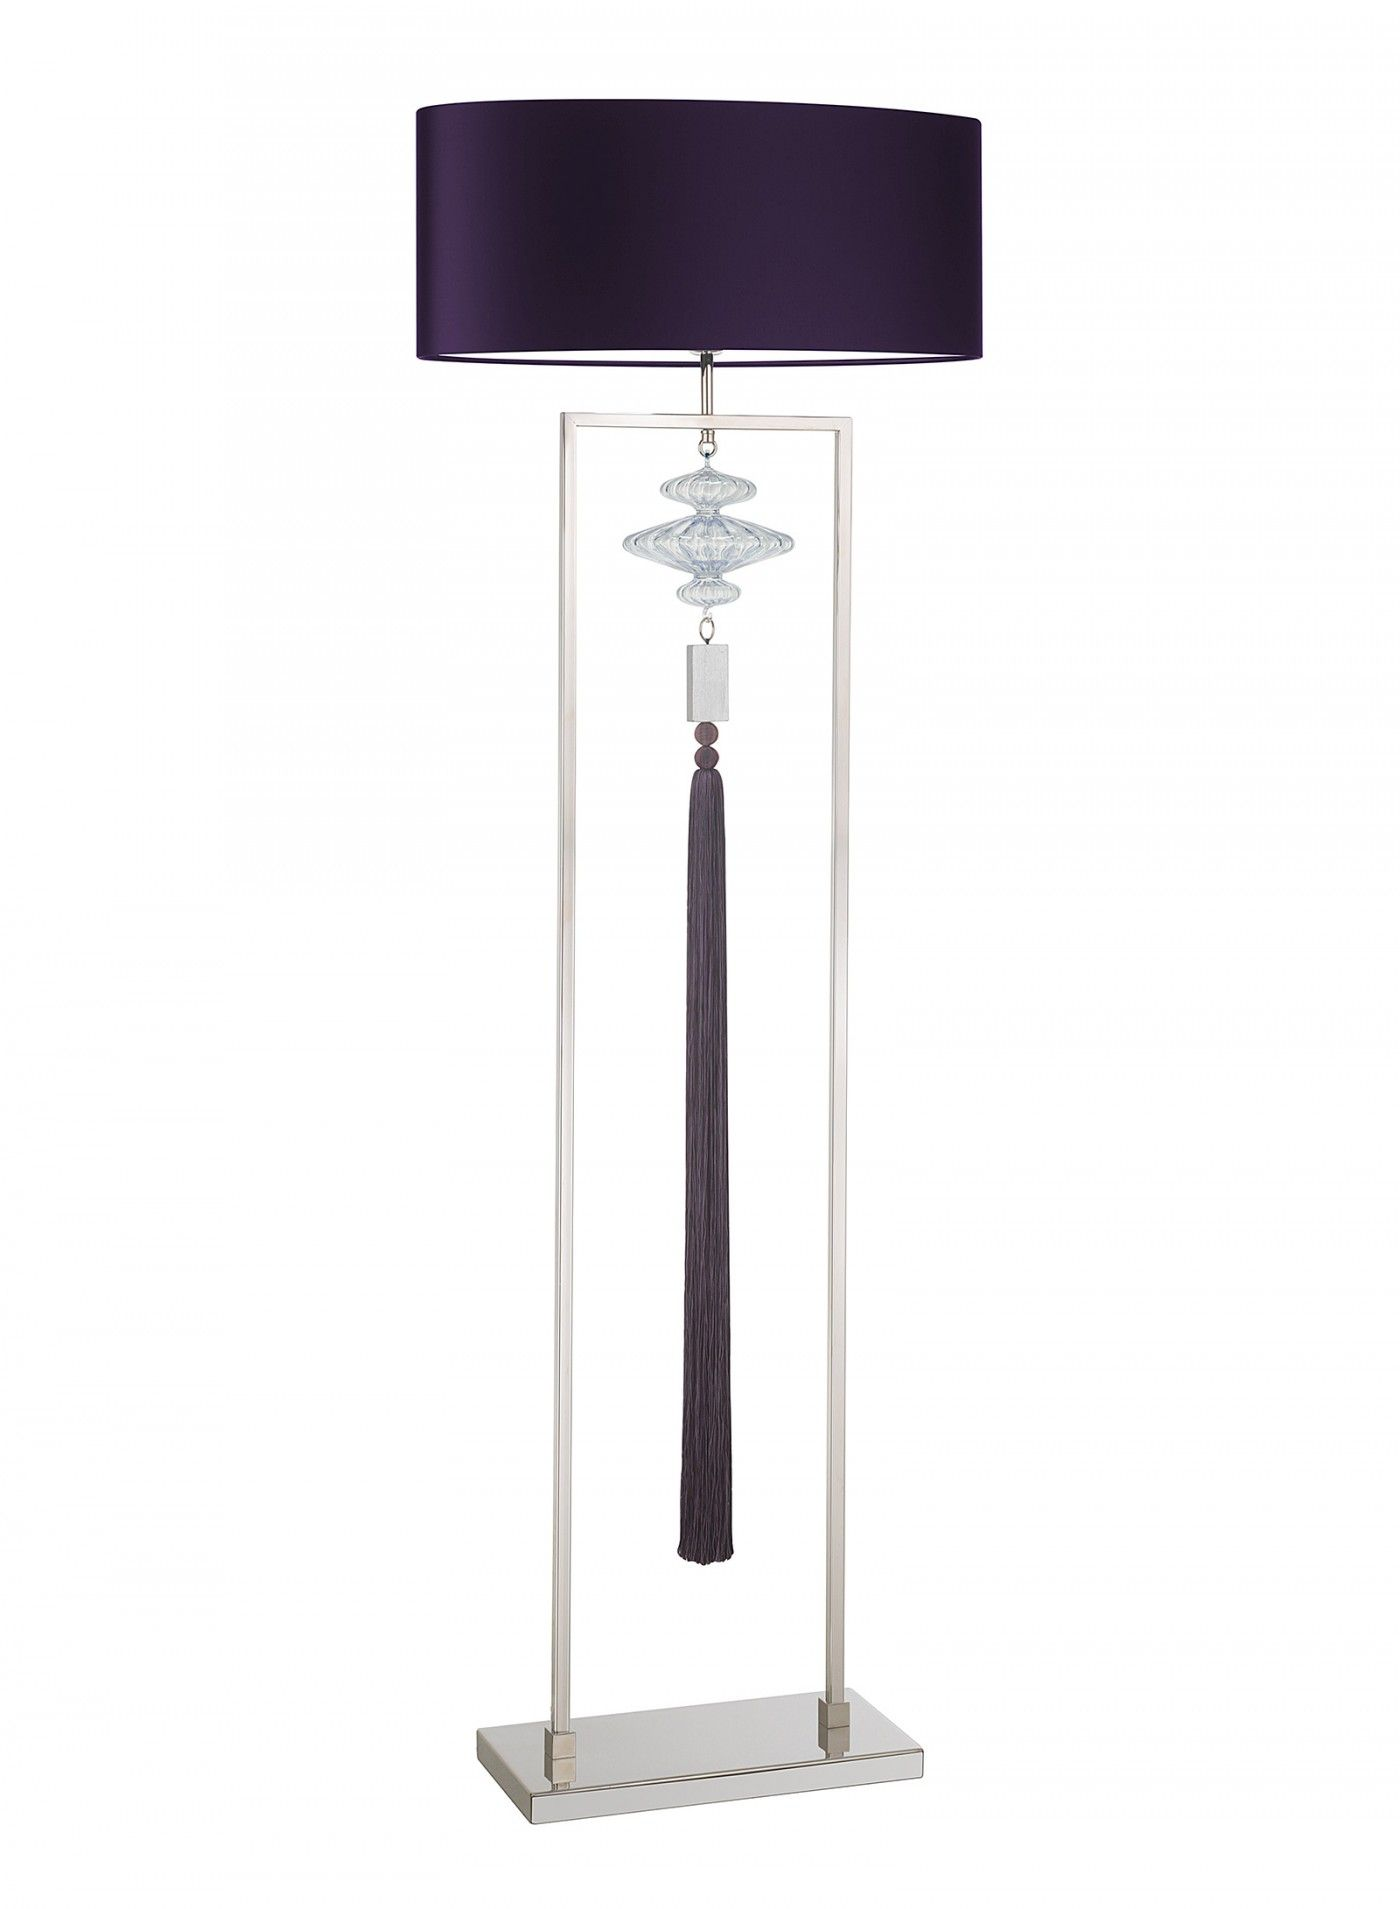 A simple yet decorative floor lamp in a nickel finish with blown a simple yet decorative floor lamp in a nickel finish with blown lustre glass detail and aloadofball Choice Image